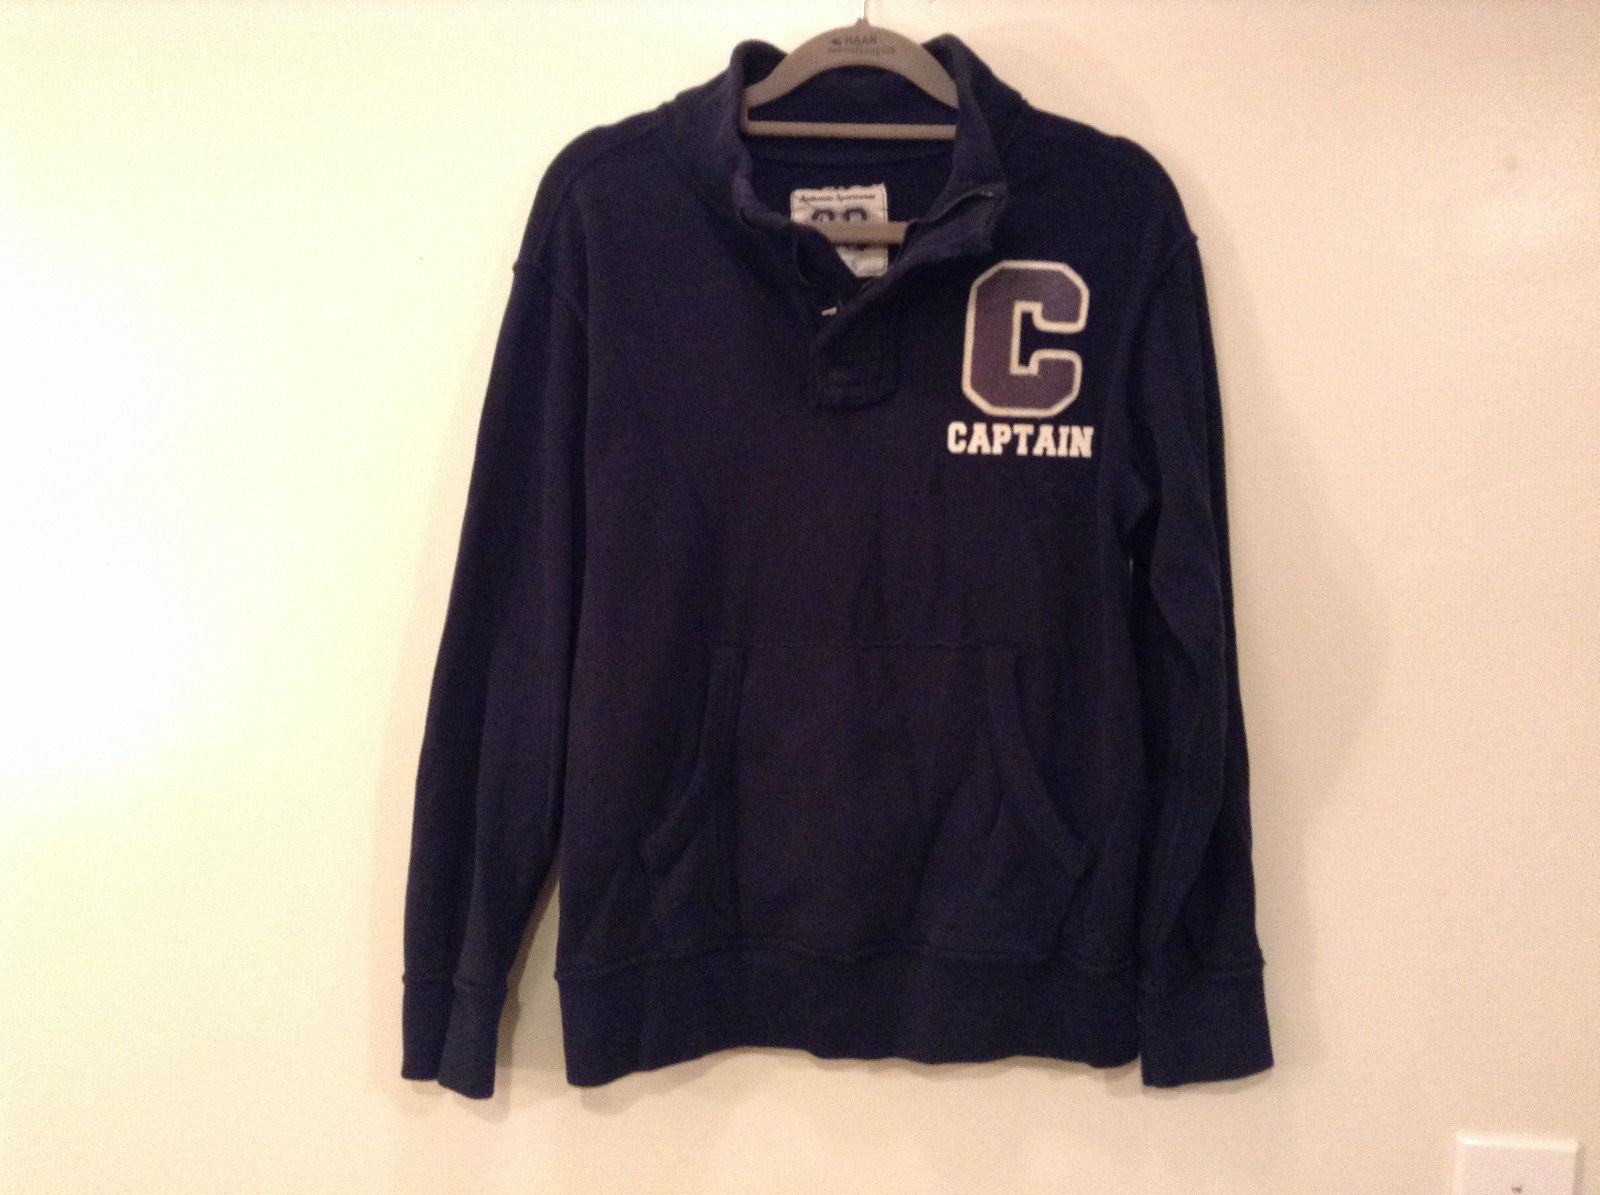 Dark Navy Long Sleeve Sweatshirt Athl Dept Size Large 10 to12 Letter C Captain